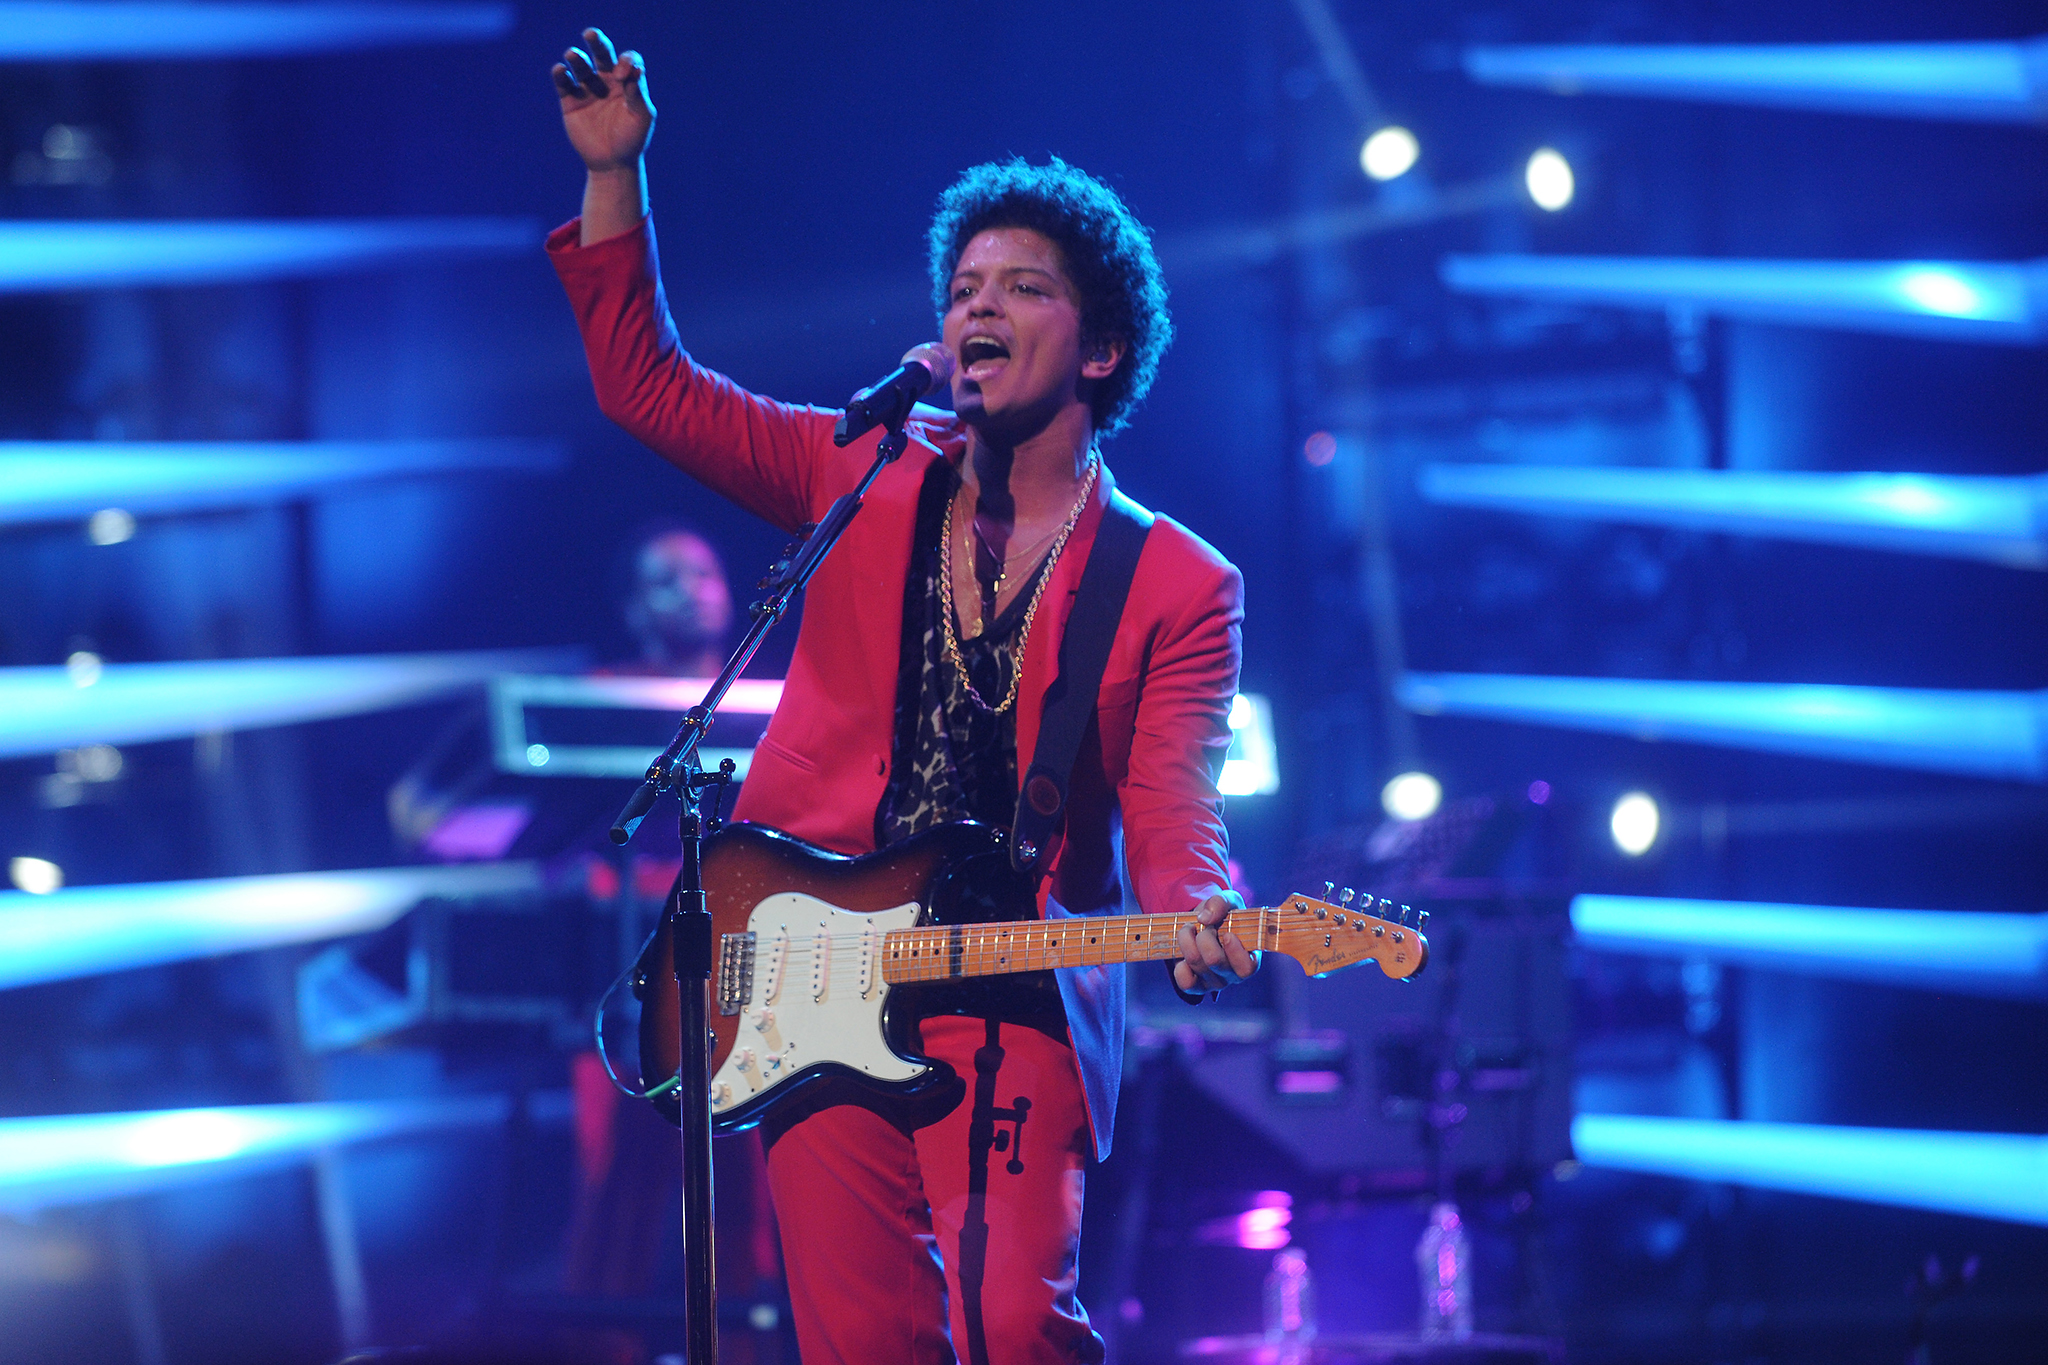 bruno mars on planet mars - photo #4